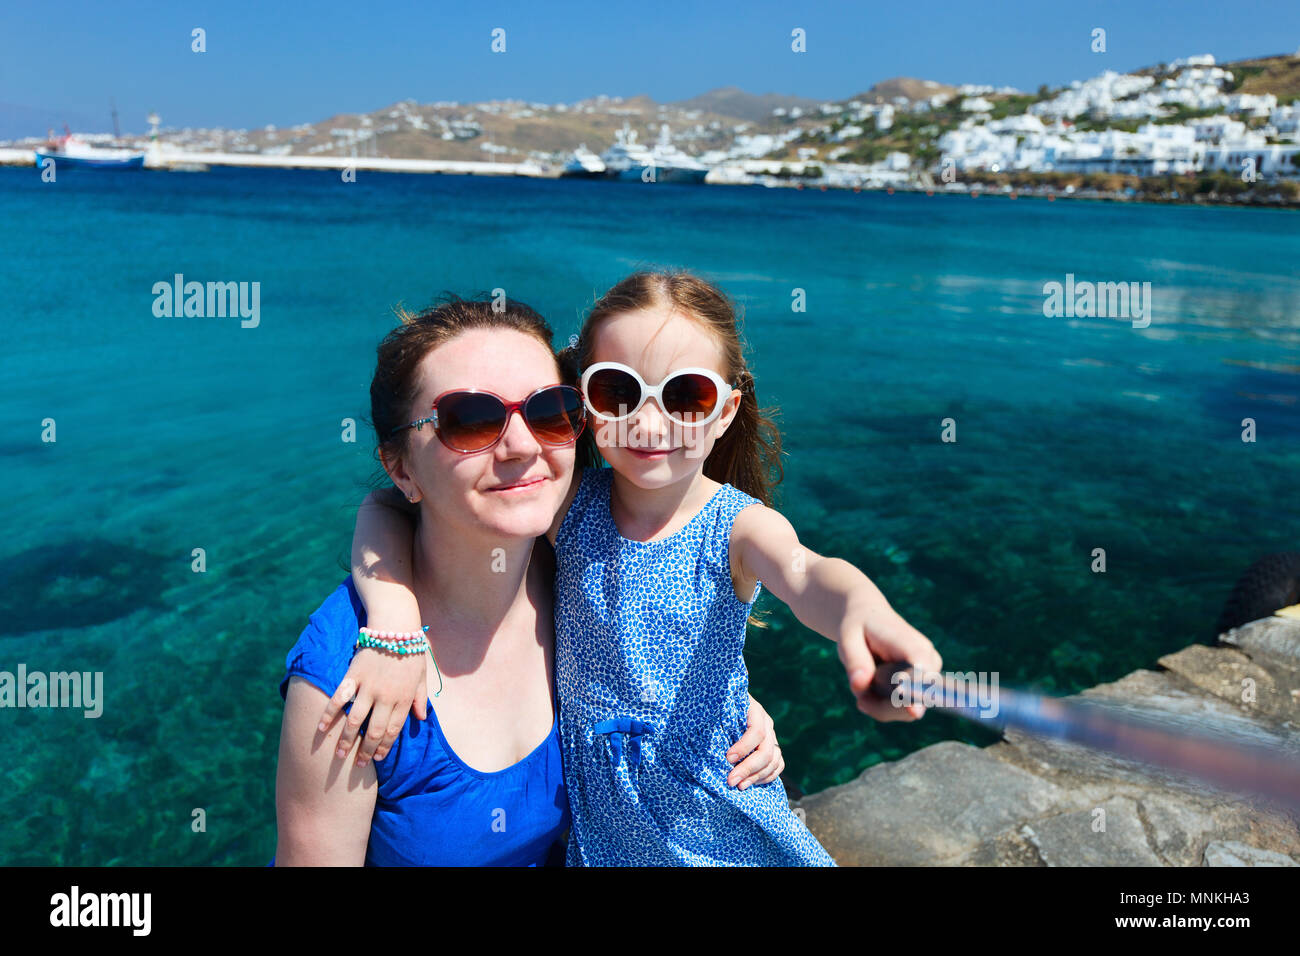 Happy family mother and her adorable little daughter on vacation taking selfie with a stick on Mykonos island, Greece - Stock Image